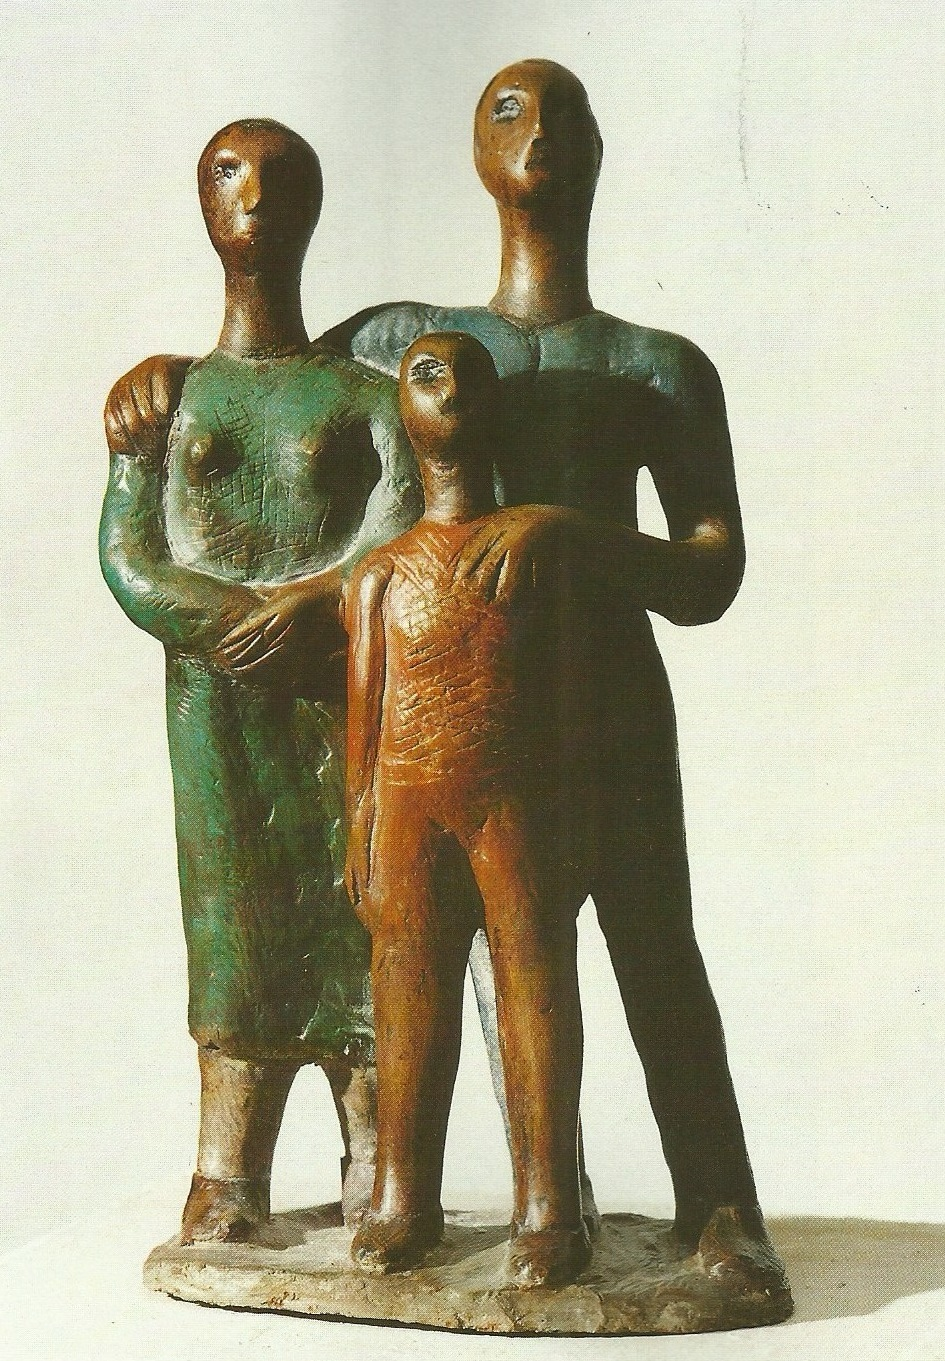 I guardiani del faro (Terracotta colorata, 1959)